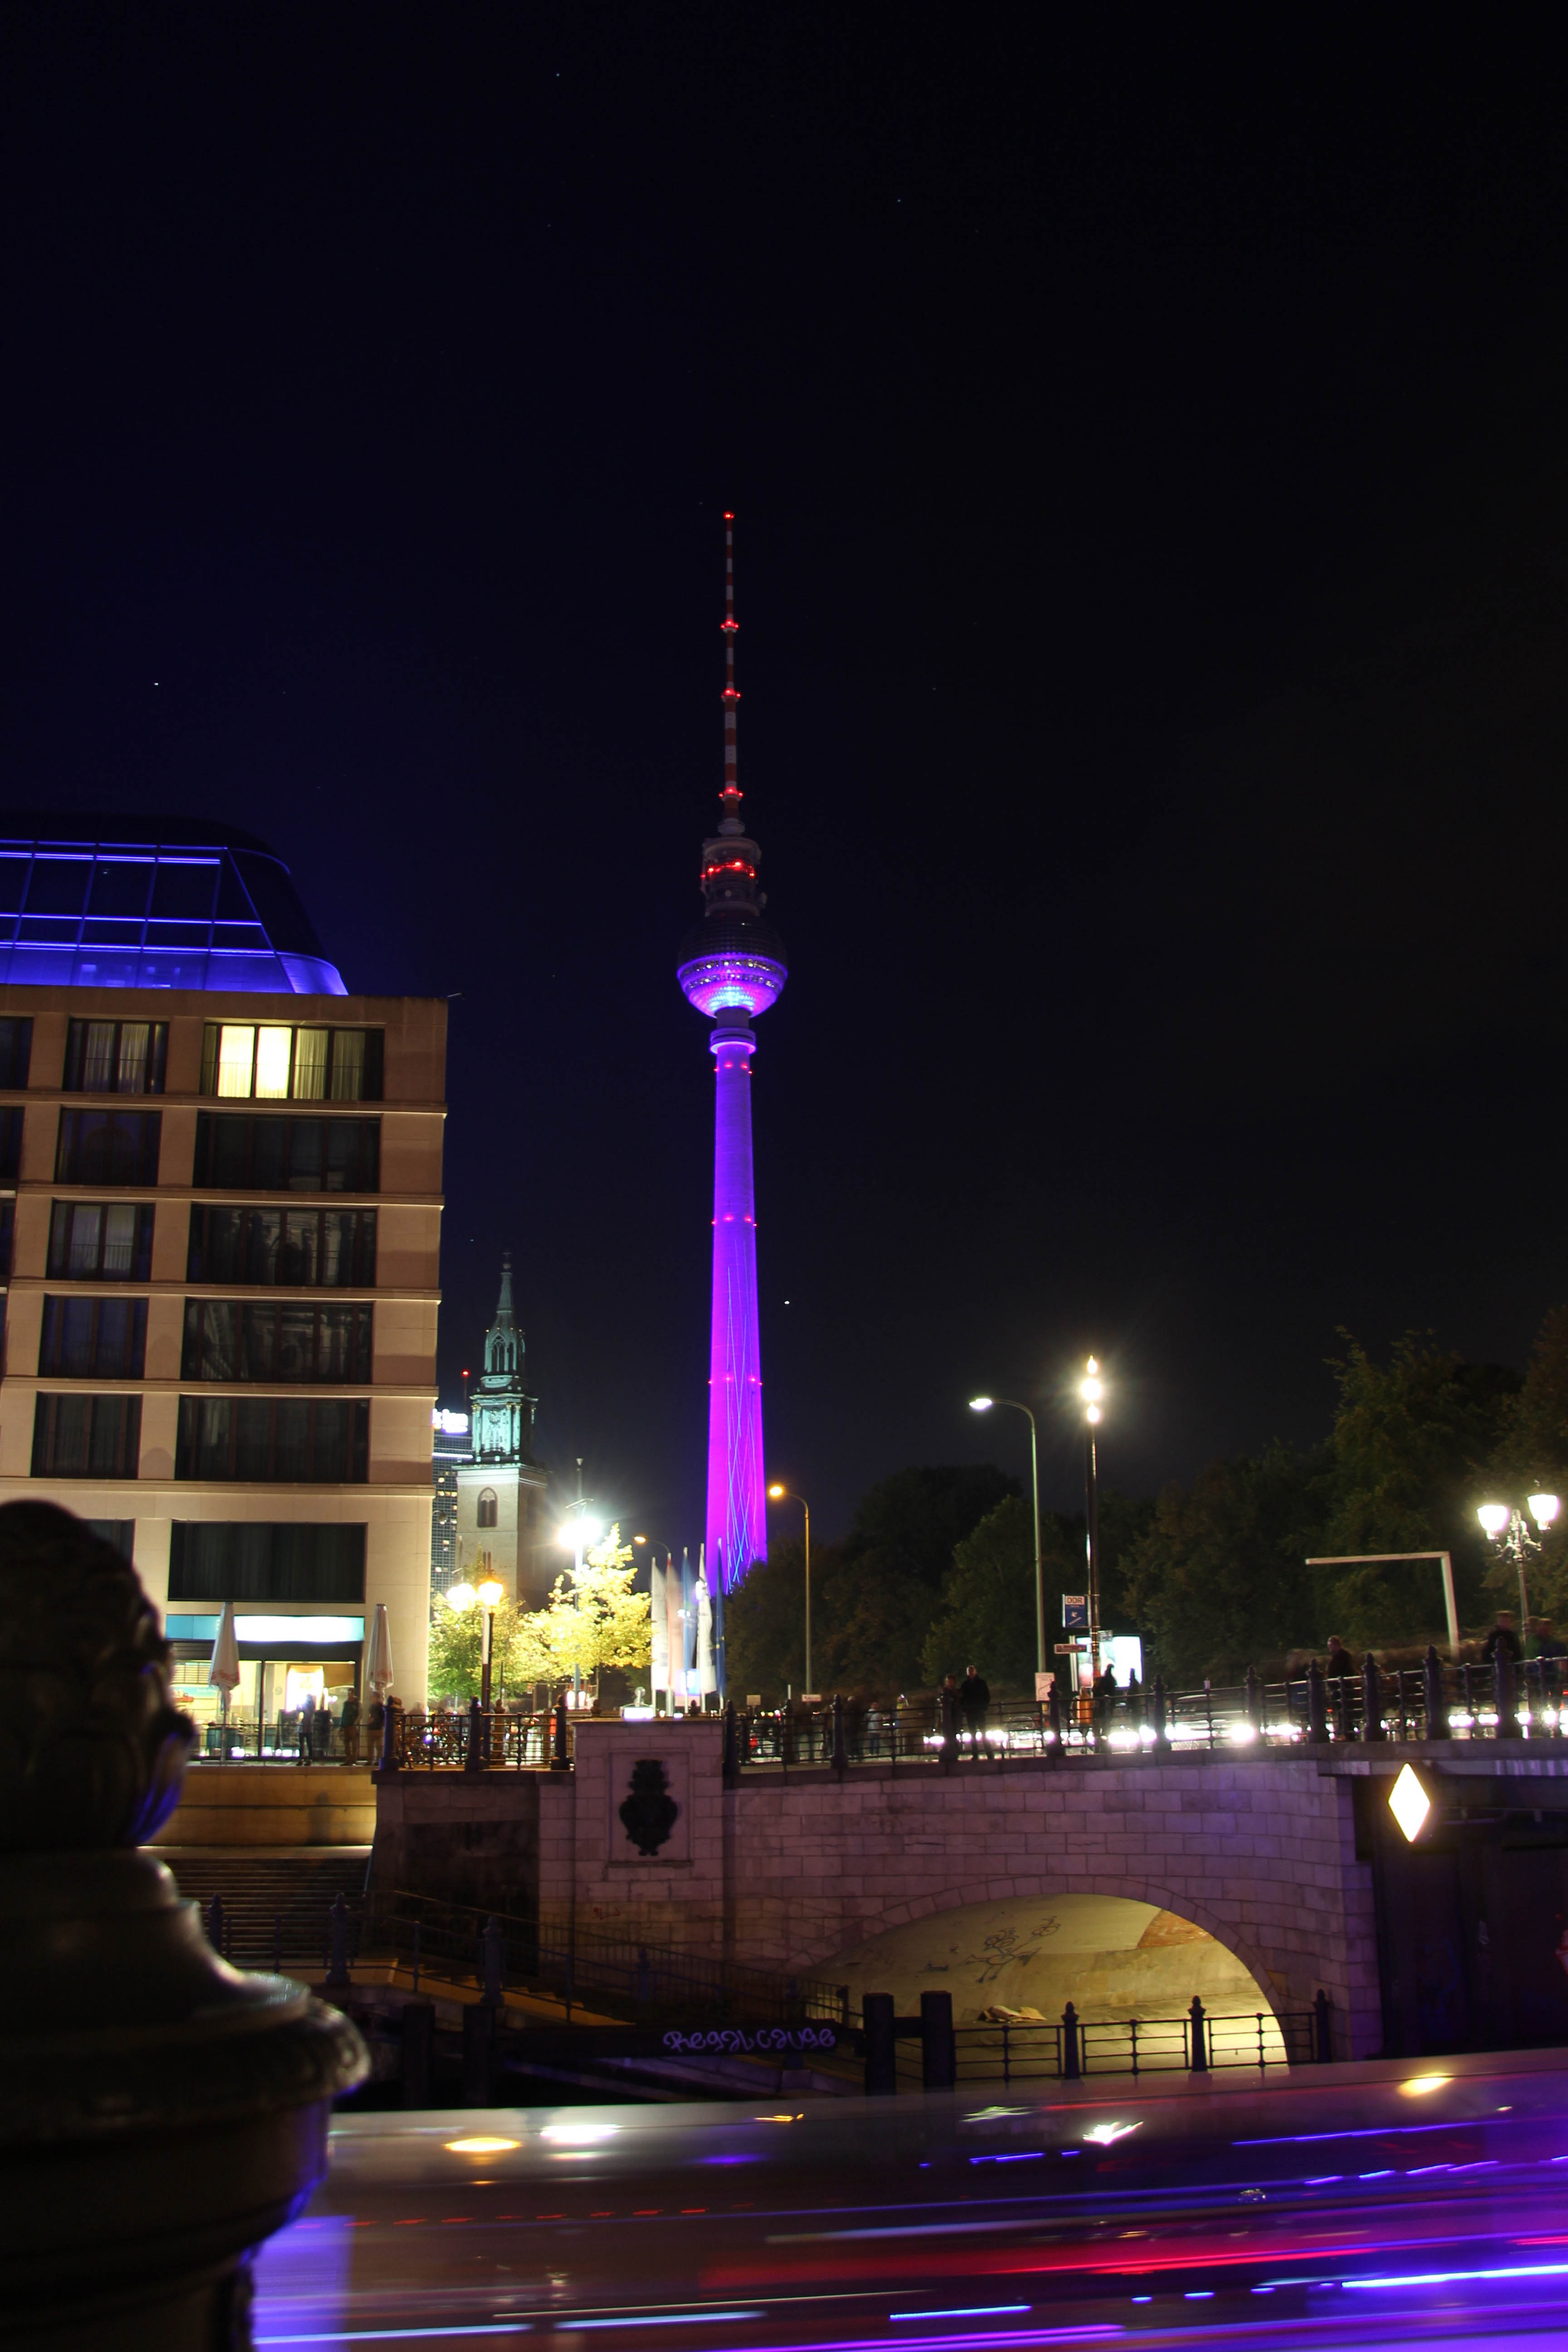 Fernsehturm (TV Tower) and in the foreground a boat streaks past on the Spree during the Festival of Lights in Berlin